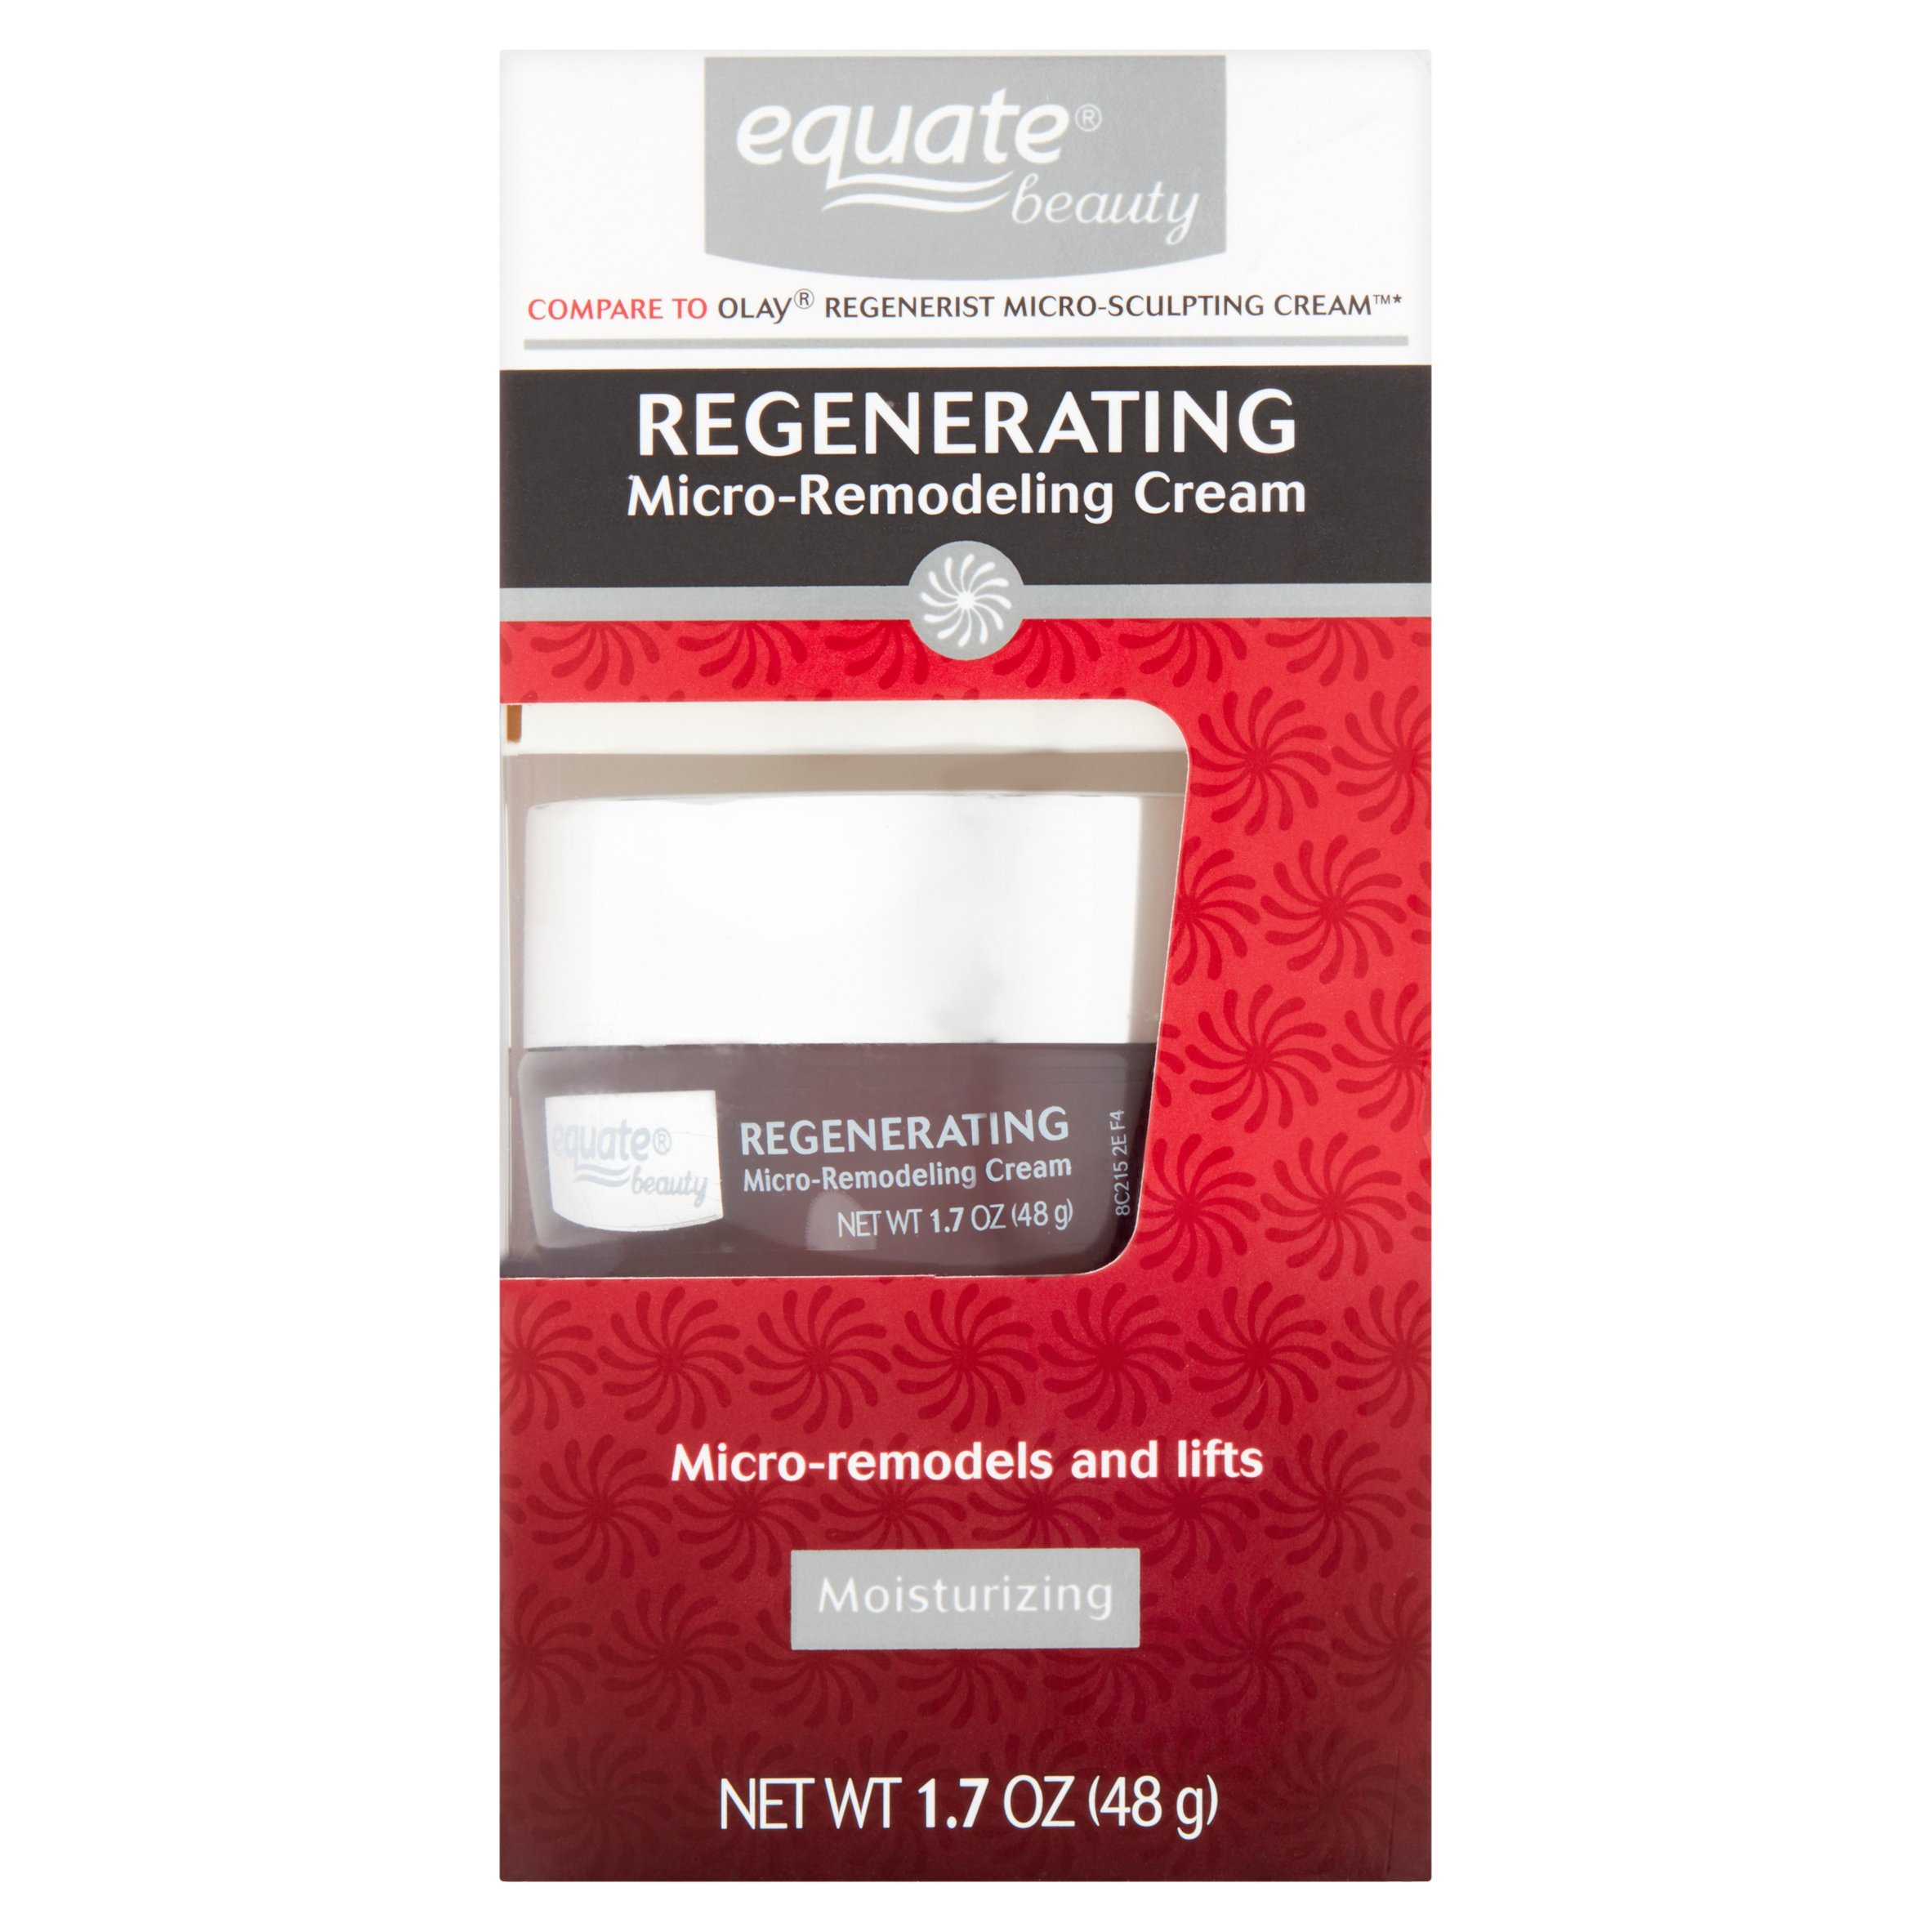 Equate Rejuvenating Micro-Remodeling Cream, 1.7 Oz